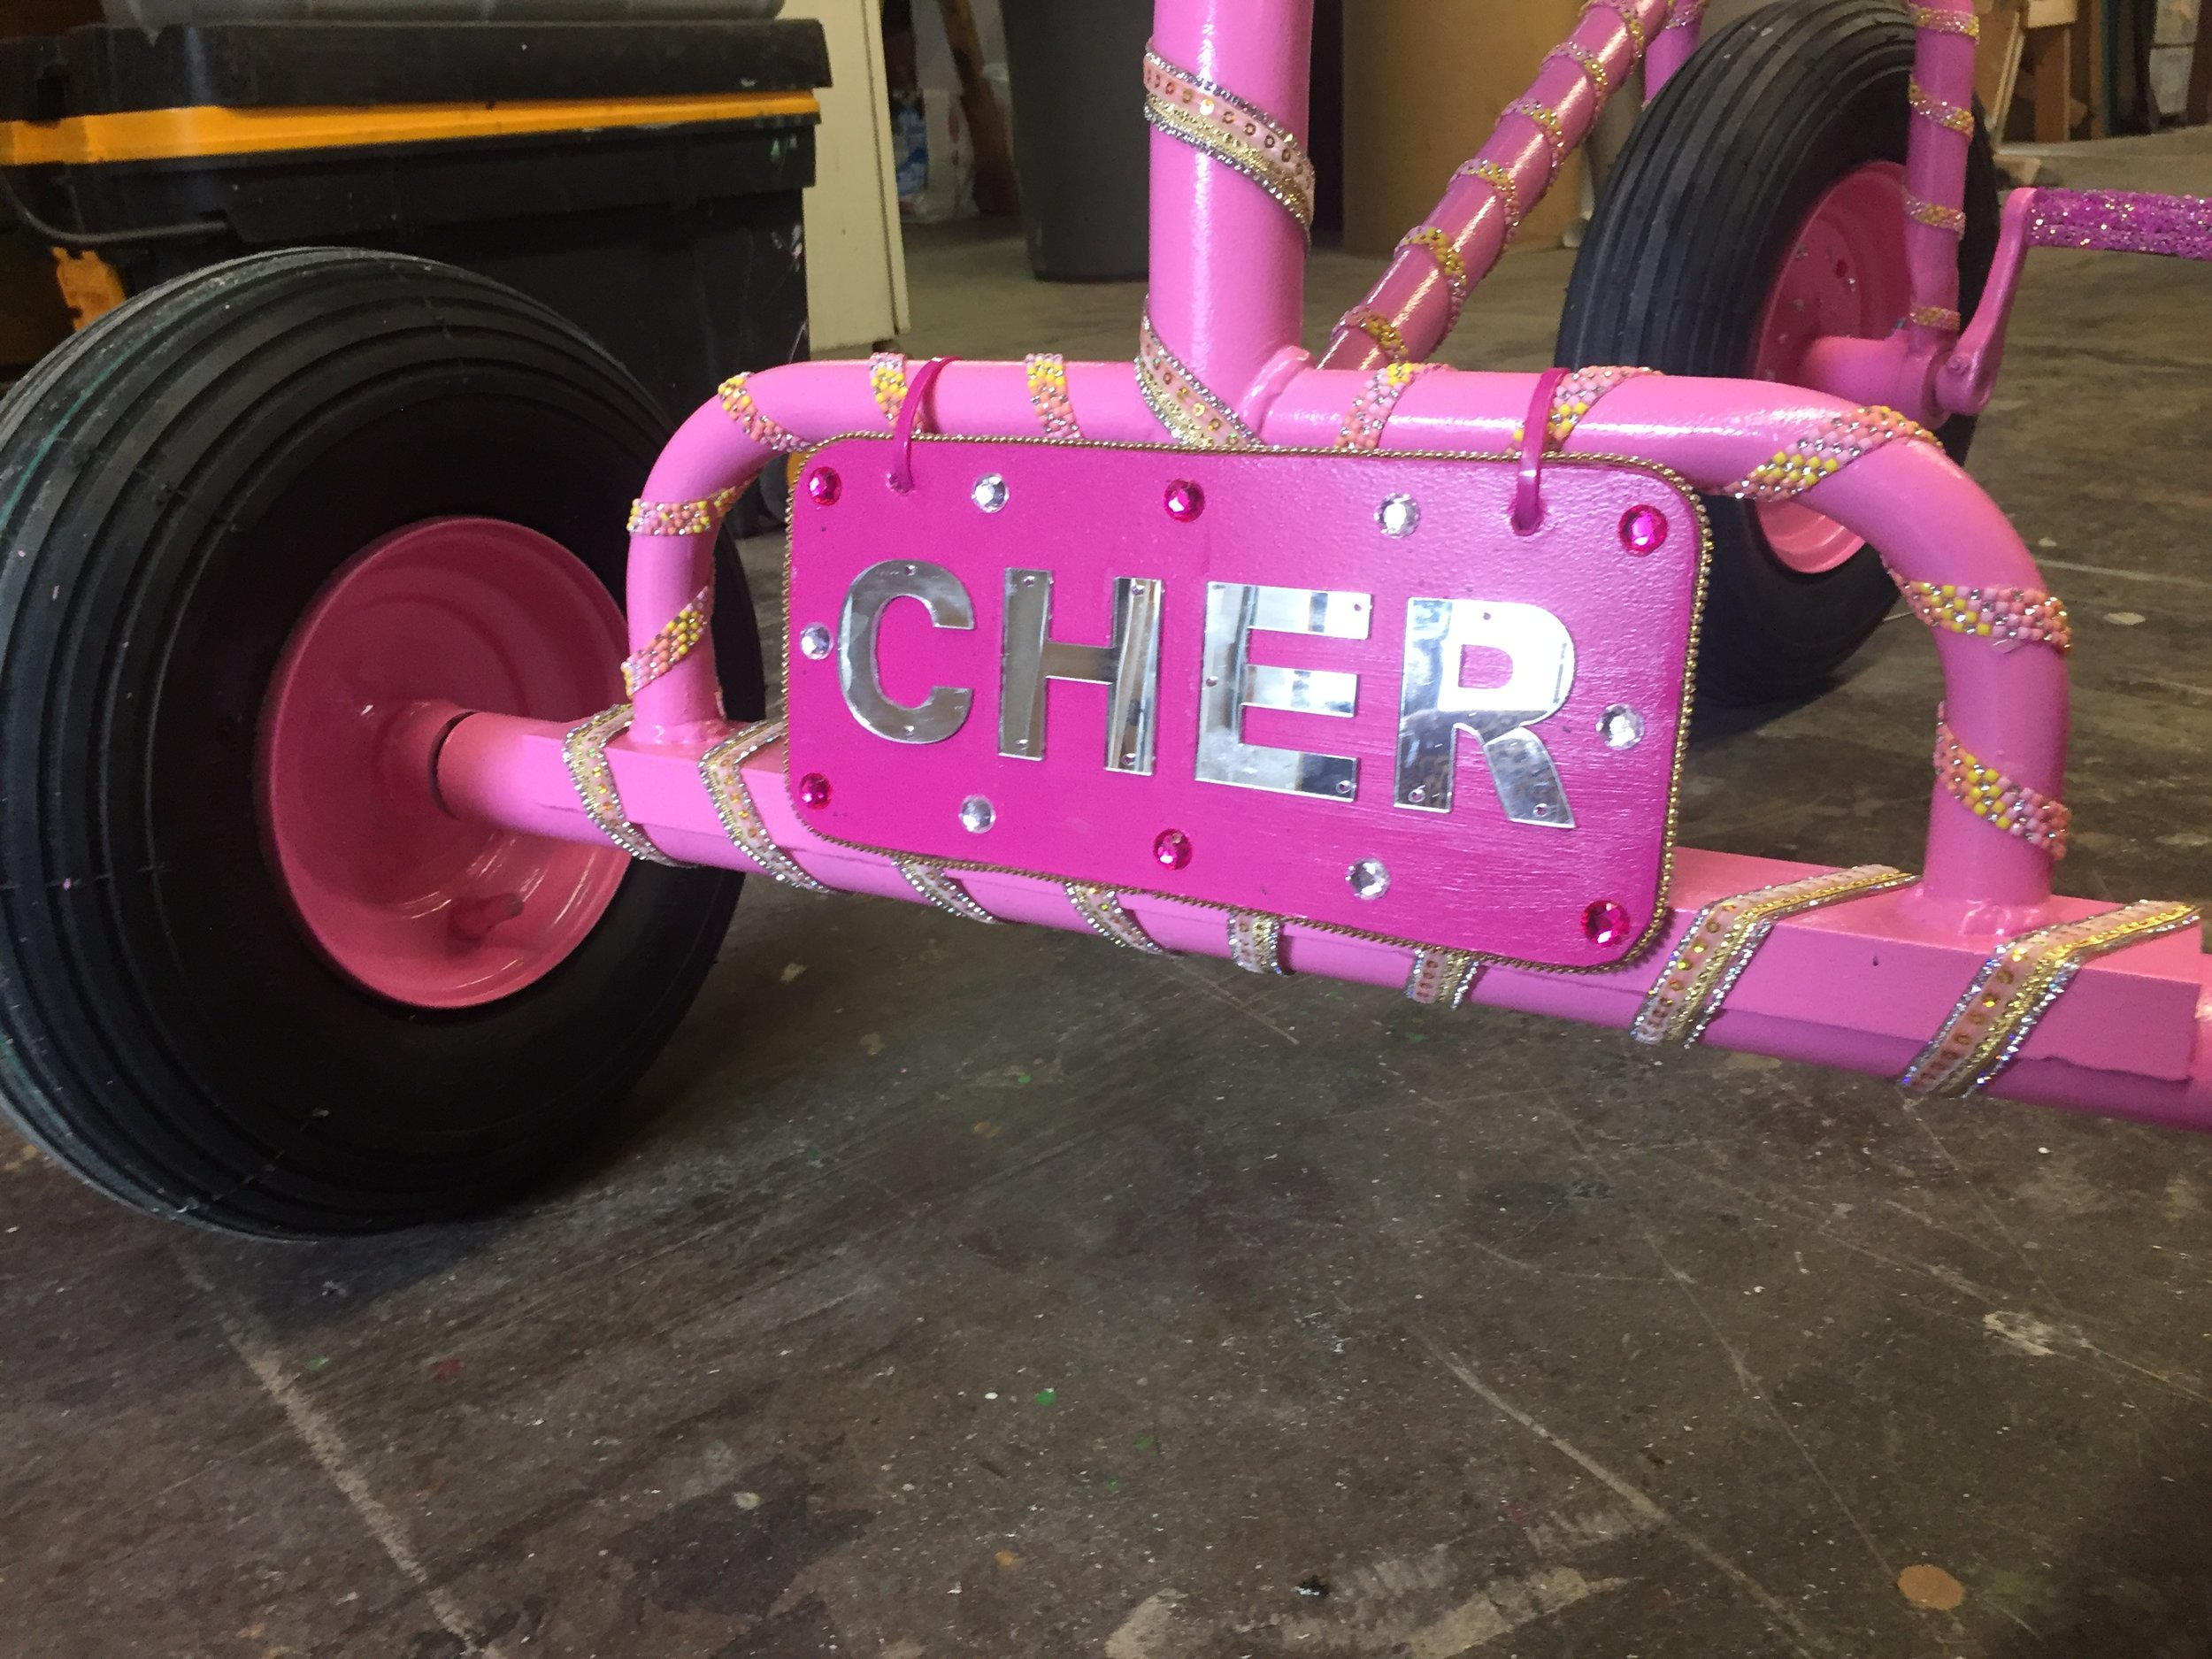 The Cher Show: A New Musical